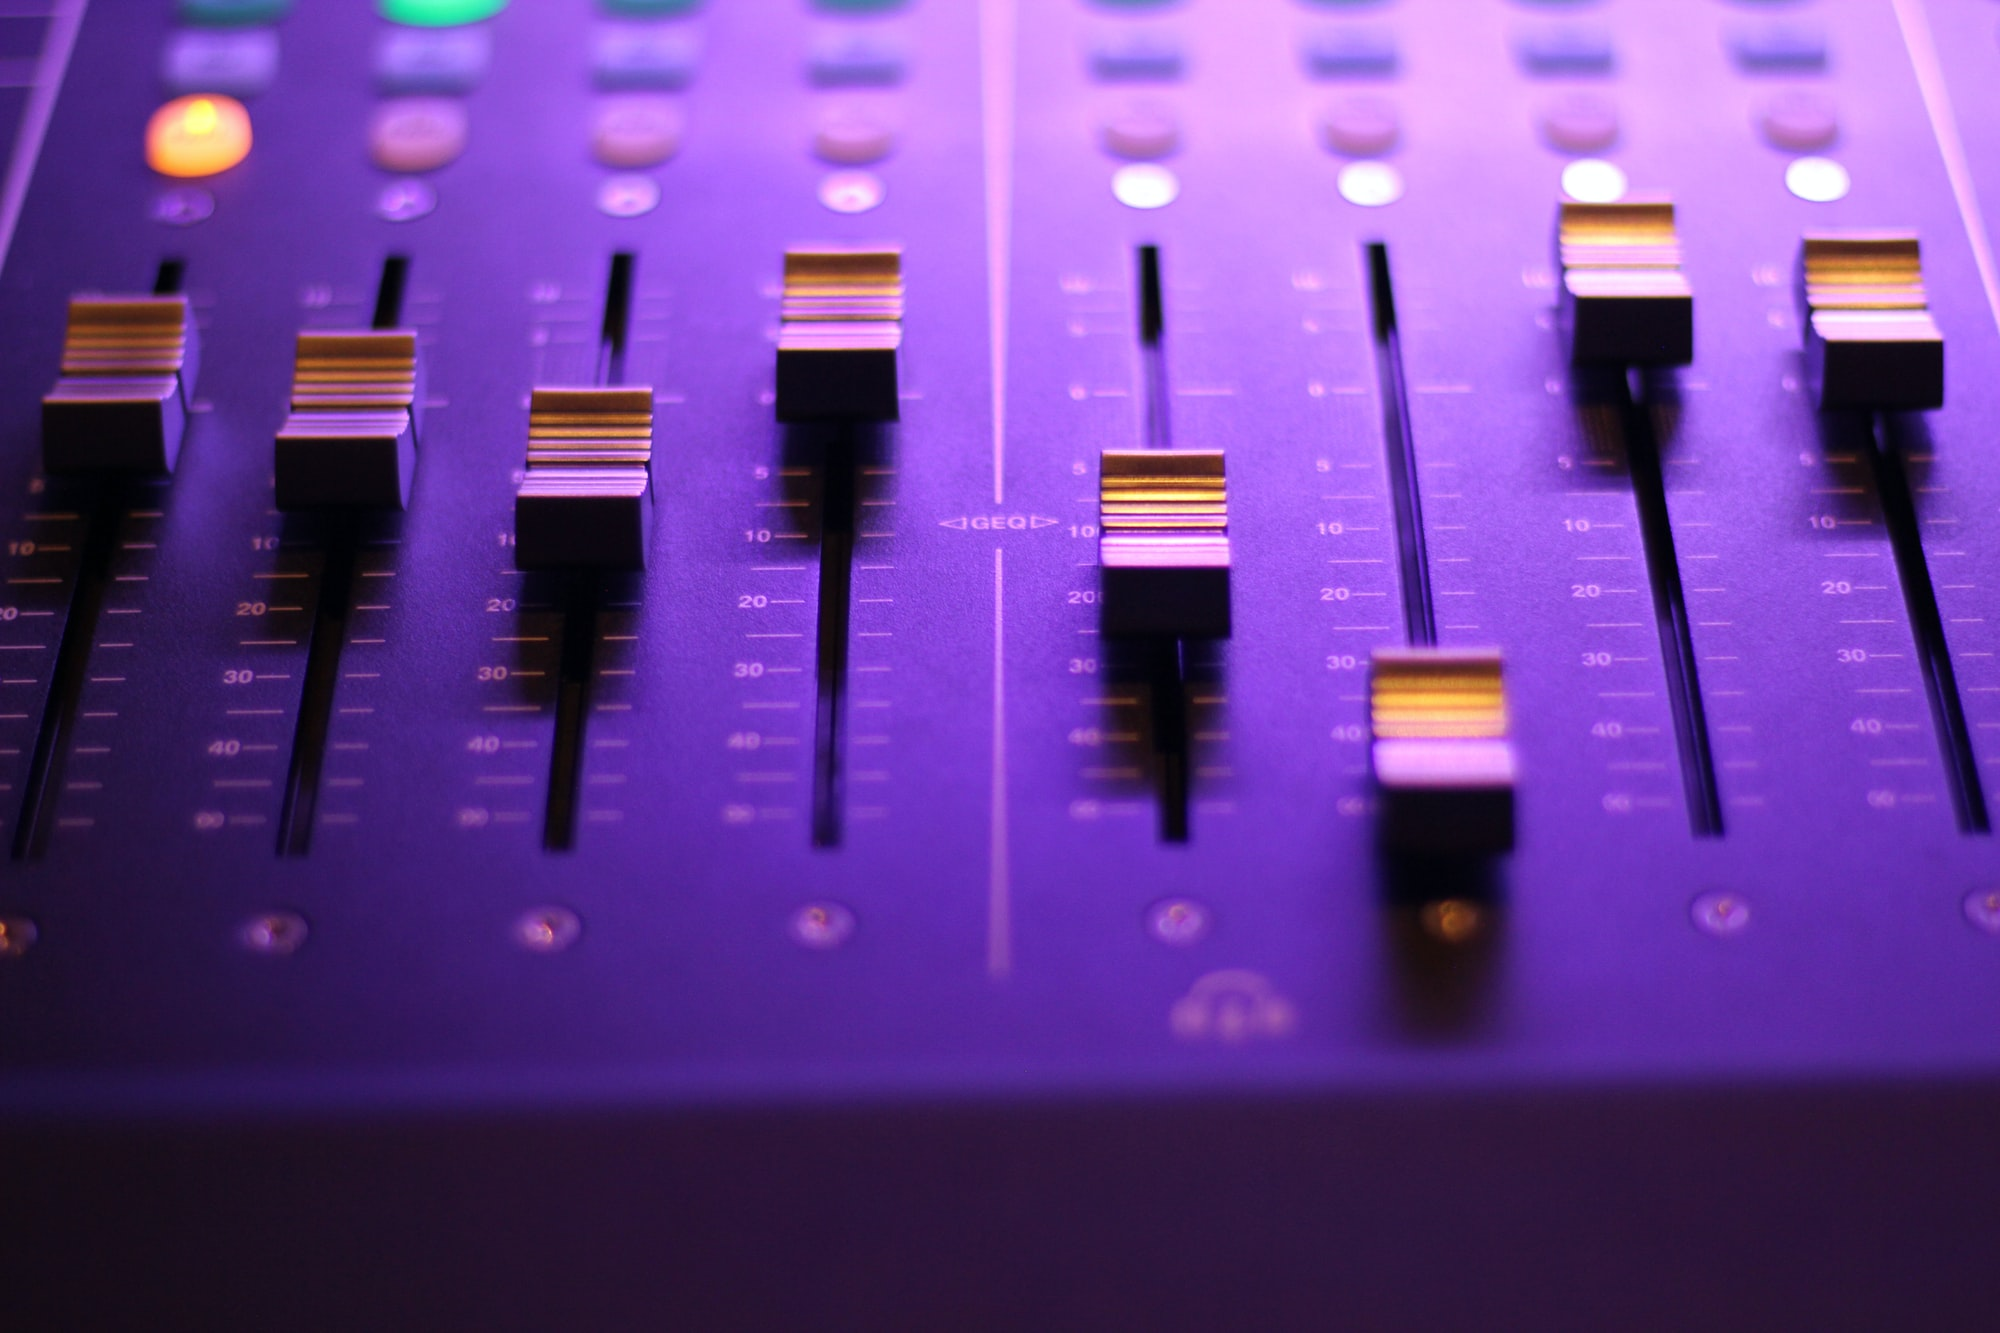 How to Play a Sound with Blazor and JavaScript